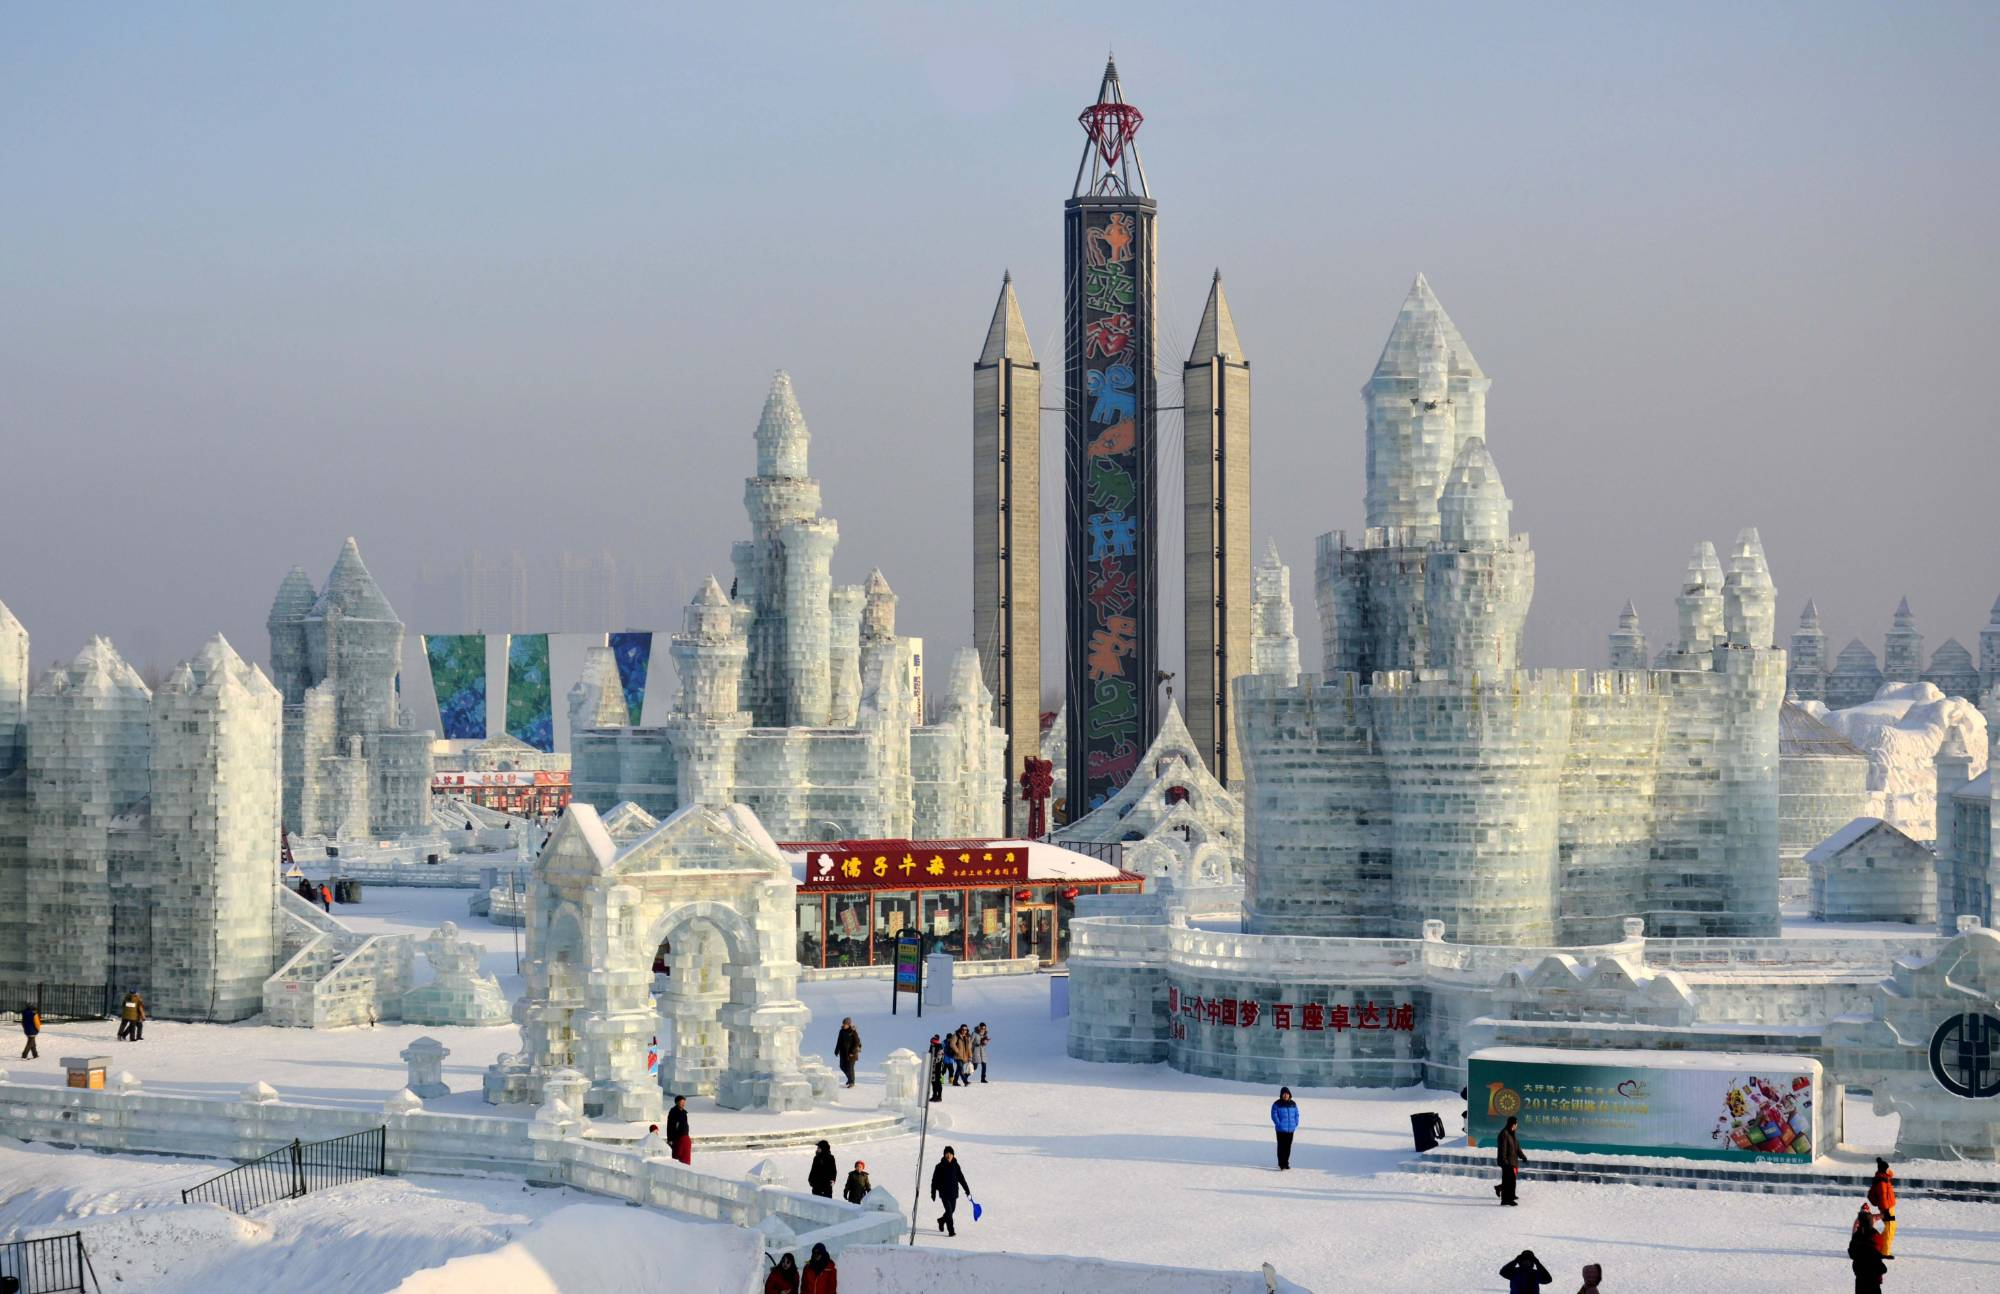 North East. - In the North East, renown as the coldest city in China, Harbin will freeze you to the core! During January, temperatures drop to -36C! The ice buildings and snowy scenery are sure to take your breath away.